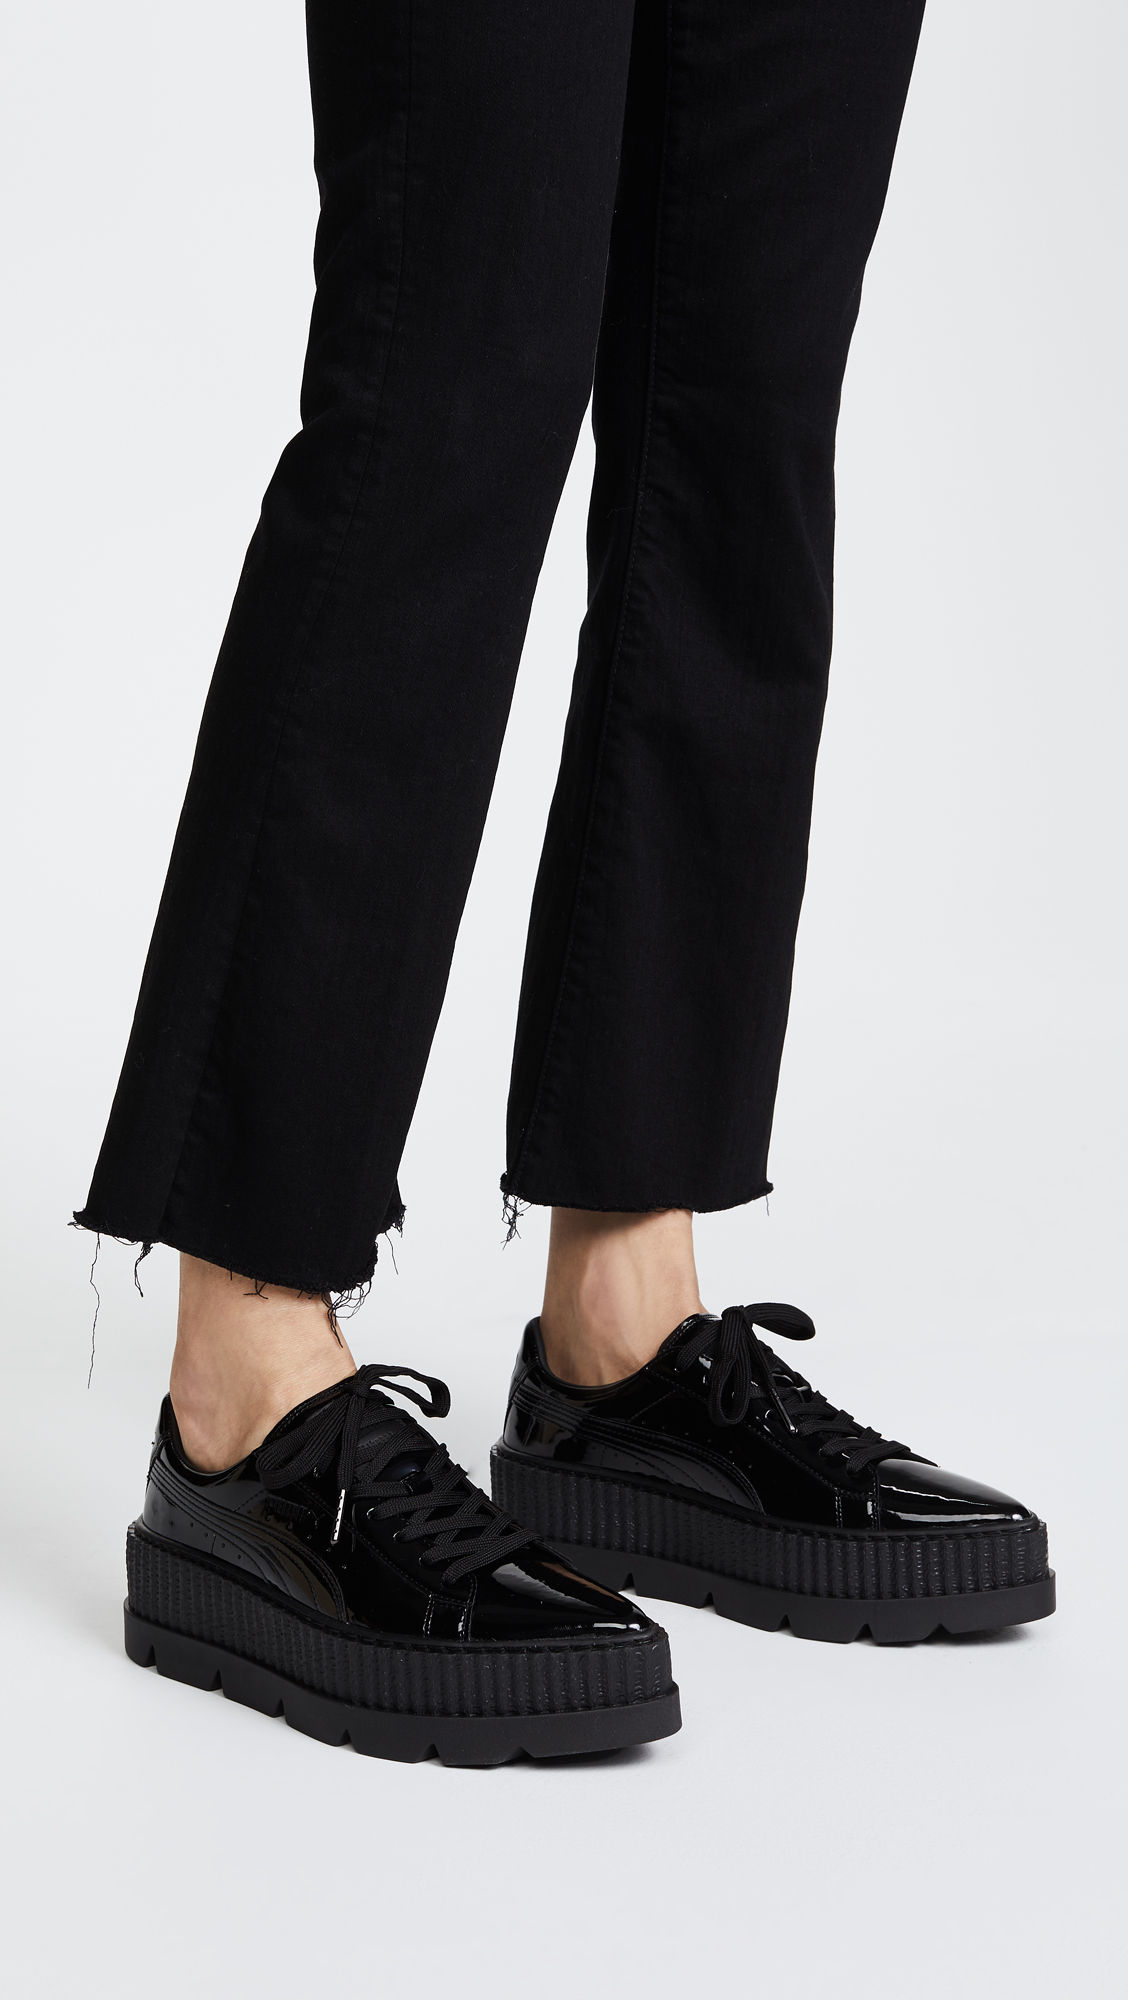 puma creepers pointed